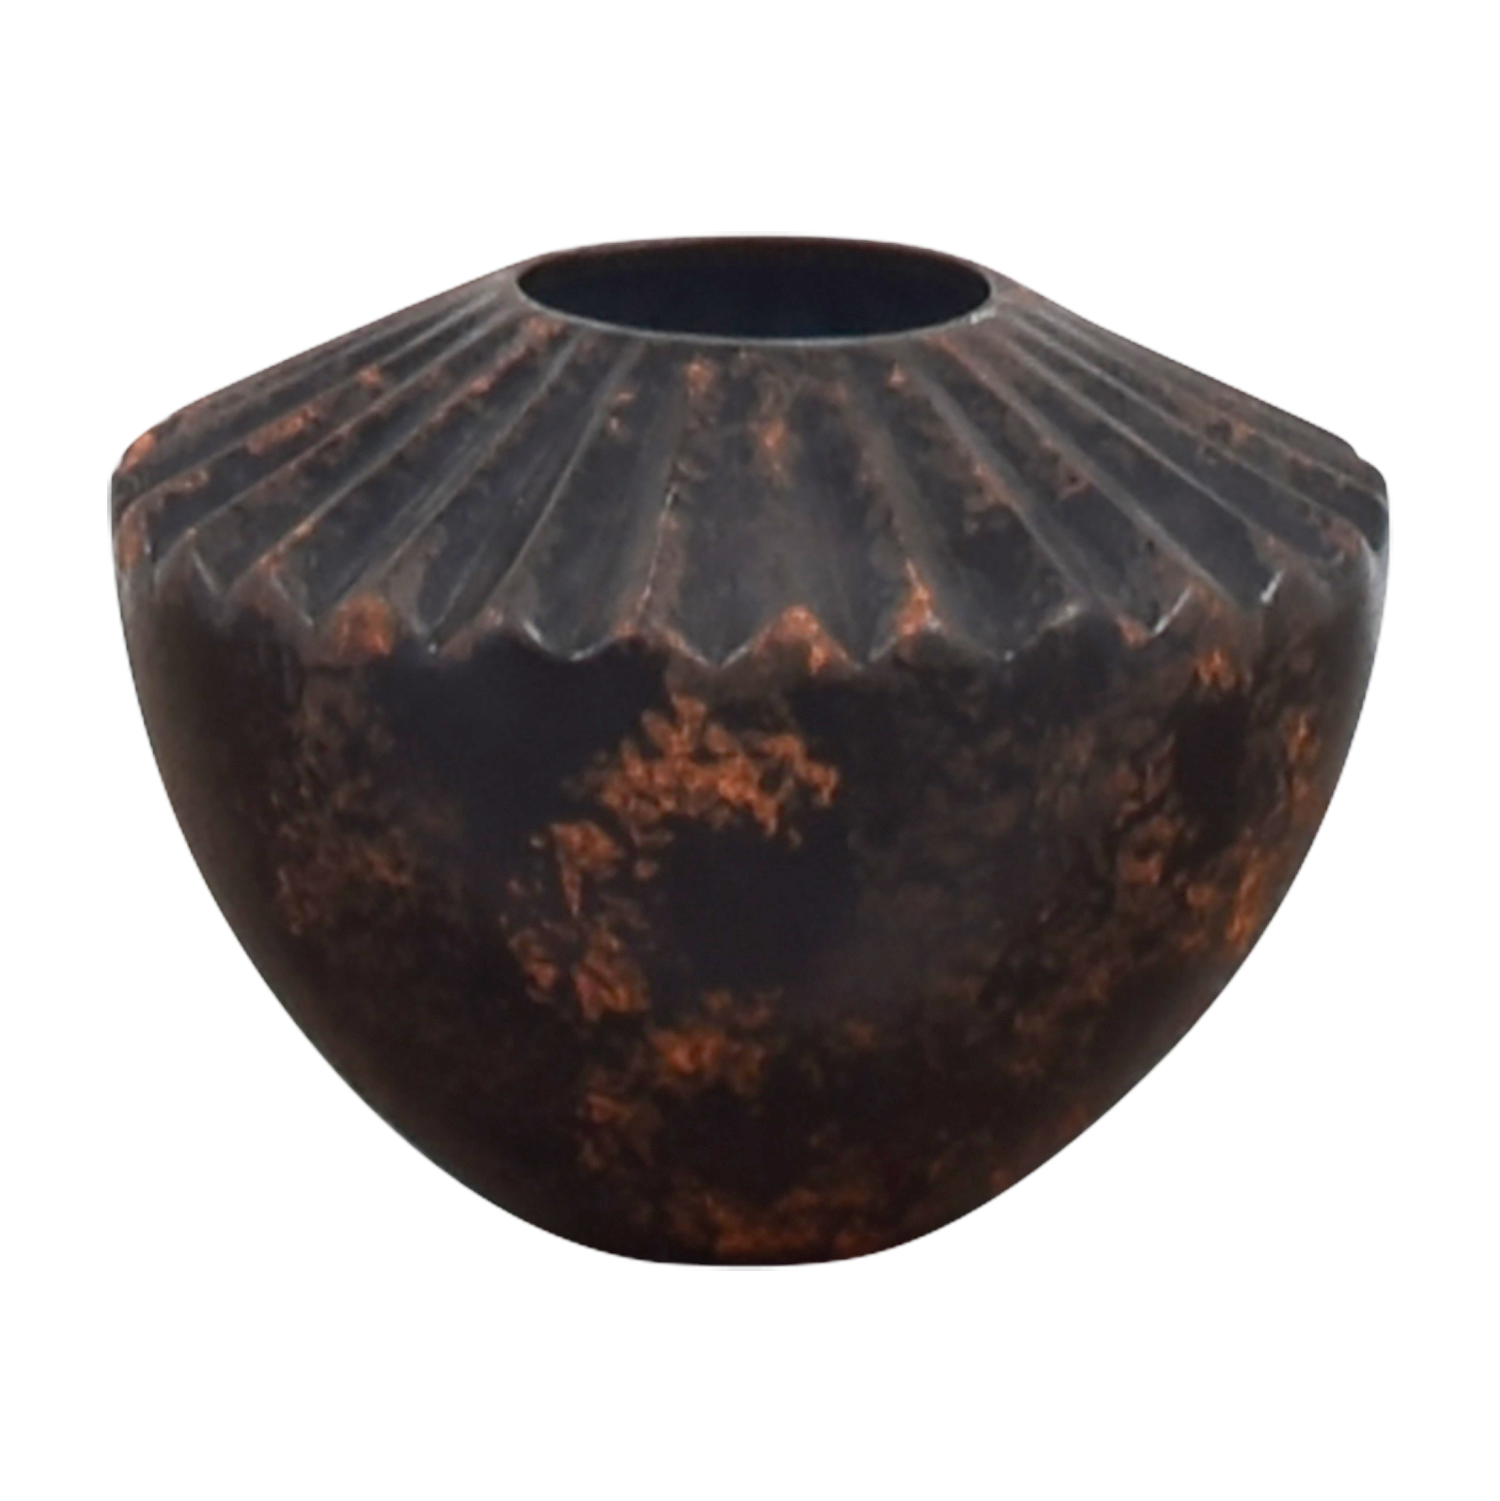 Vanguard Accents Ceramic Vase Vanguard Accents